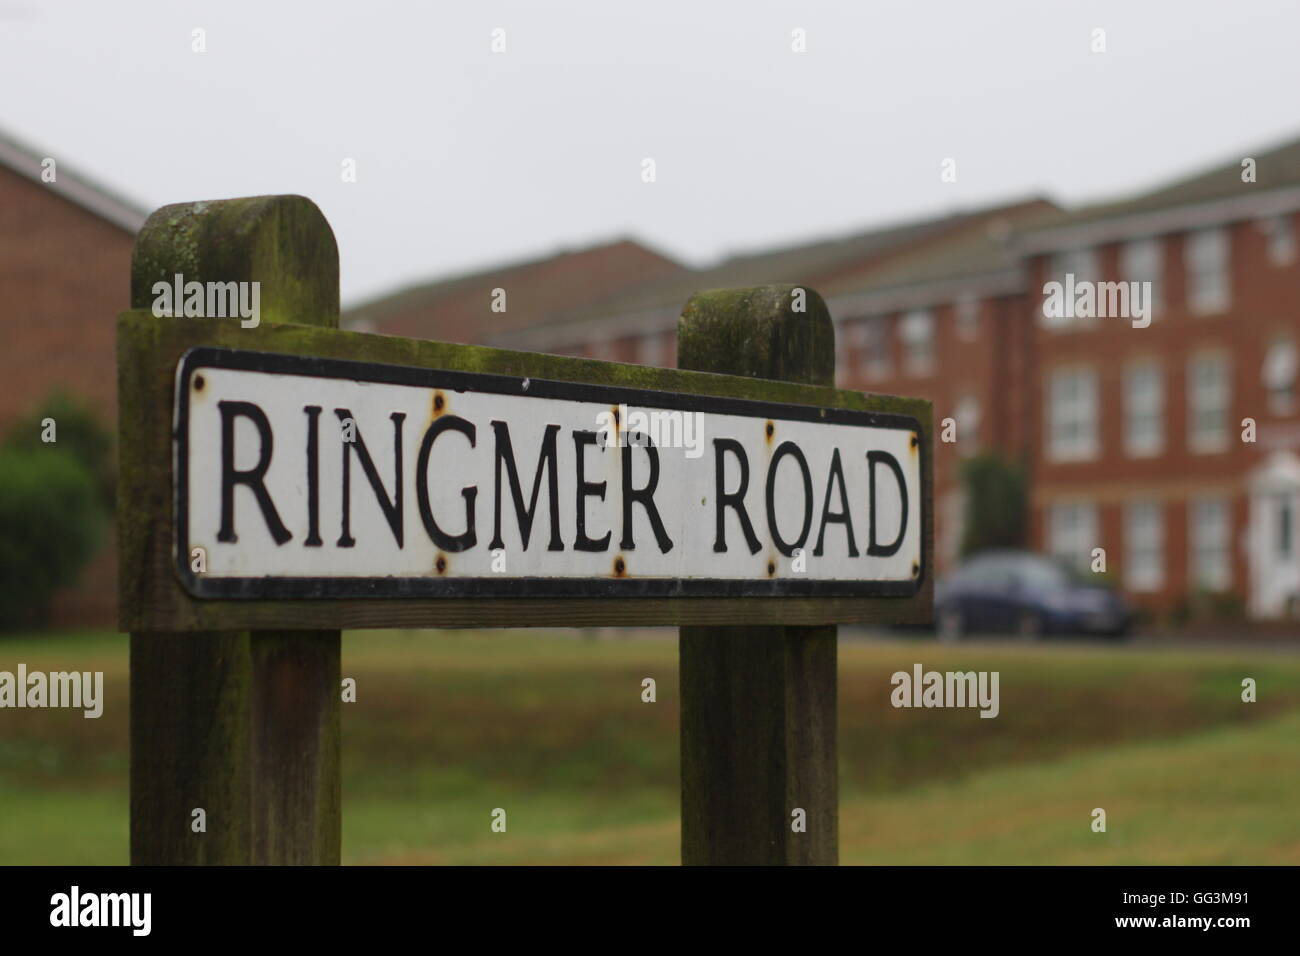 Road name sign - Stock Image